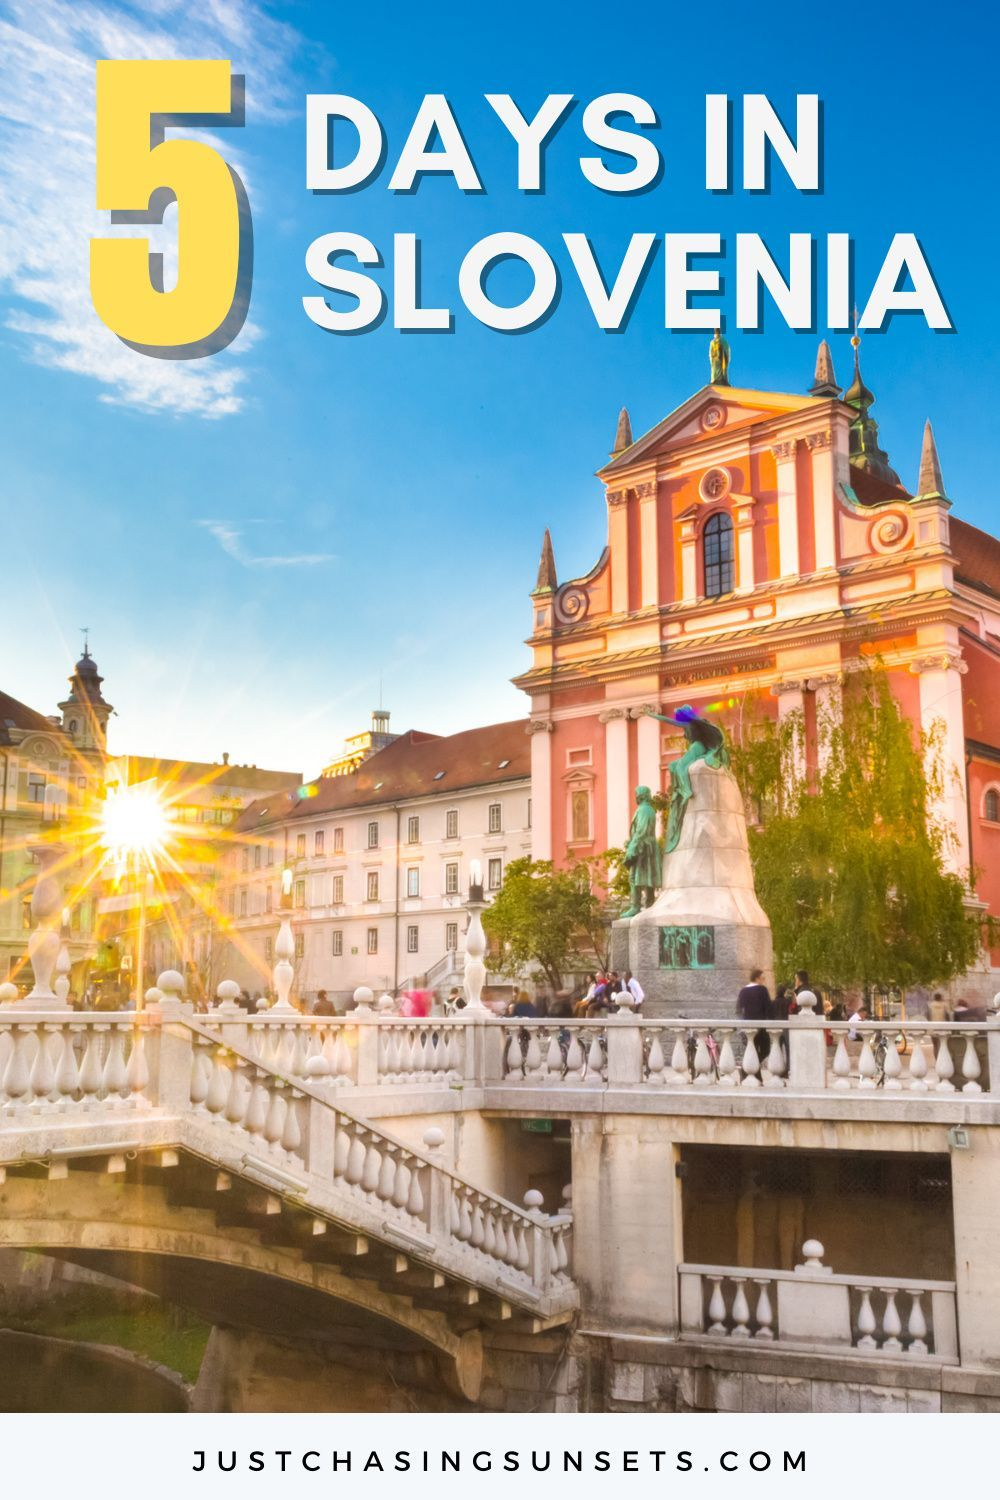 5 Days In Slovenia See It All With This 5 Day Slovenia Itinerary In 2020 Slovenia Travel European Destination Travel For A Year